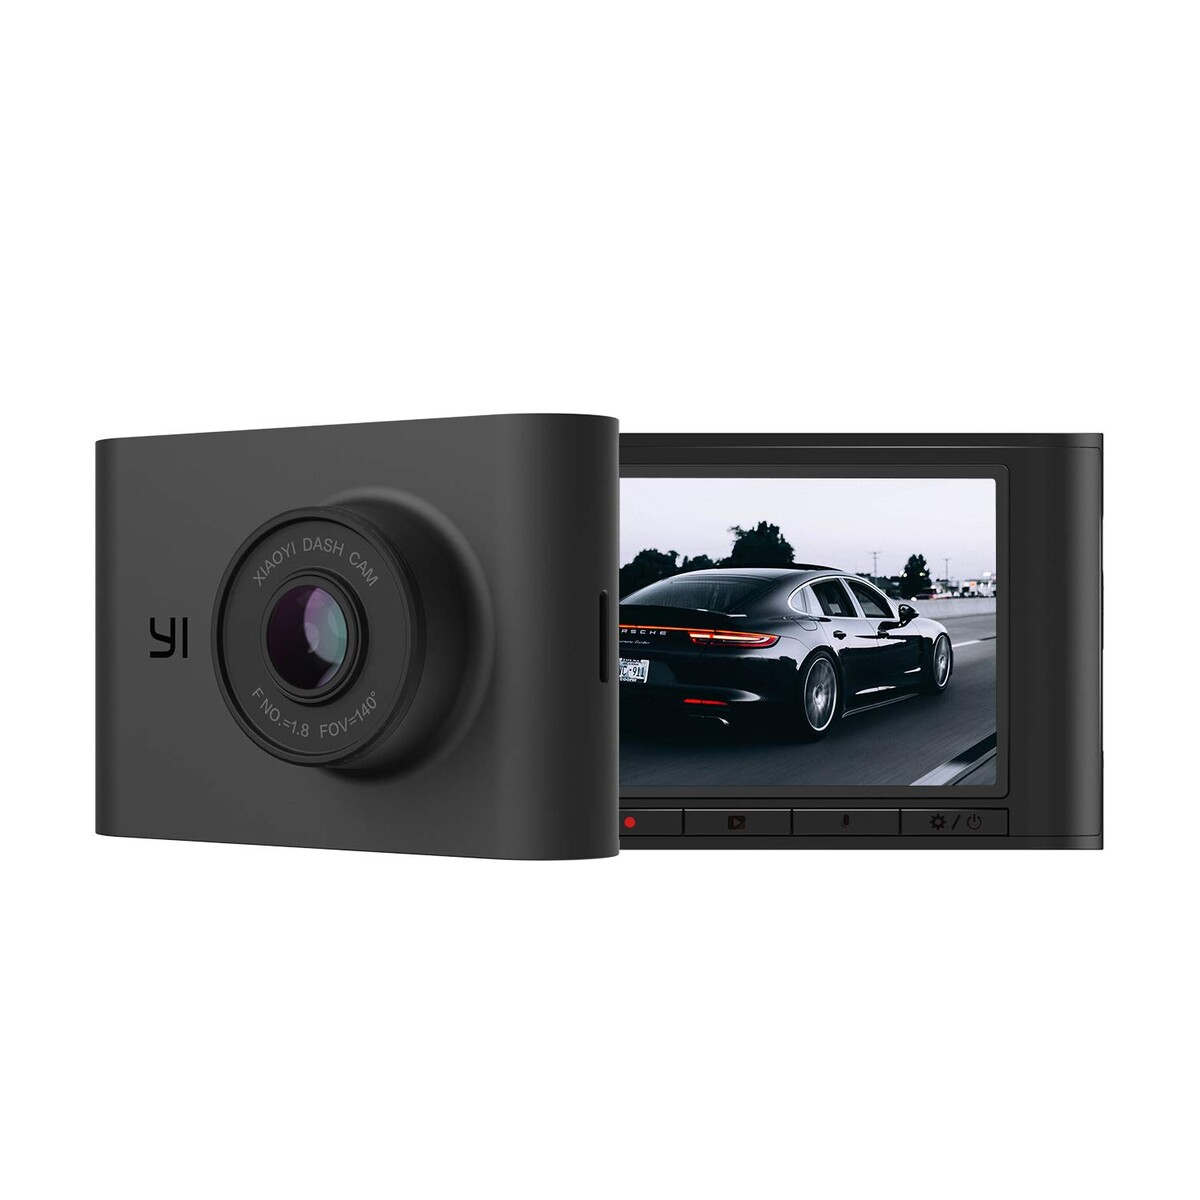 A new dash-cam from YI has the latest Sony night-vision